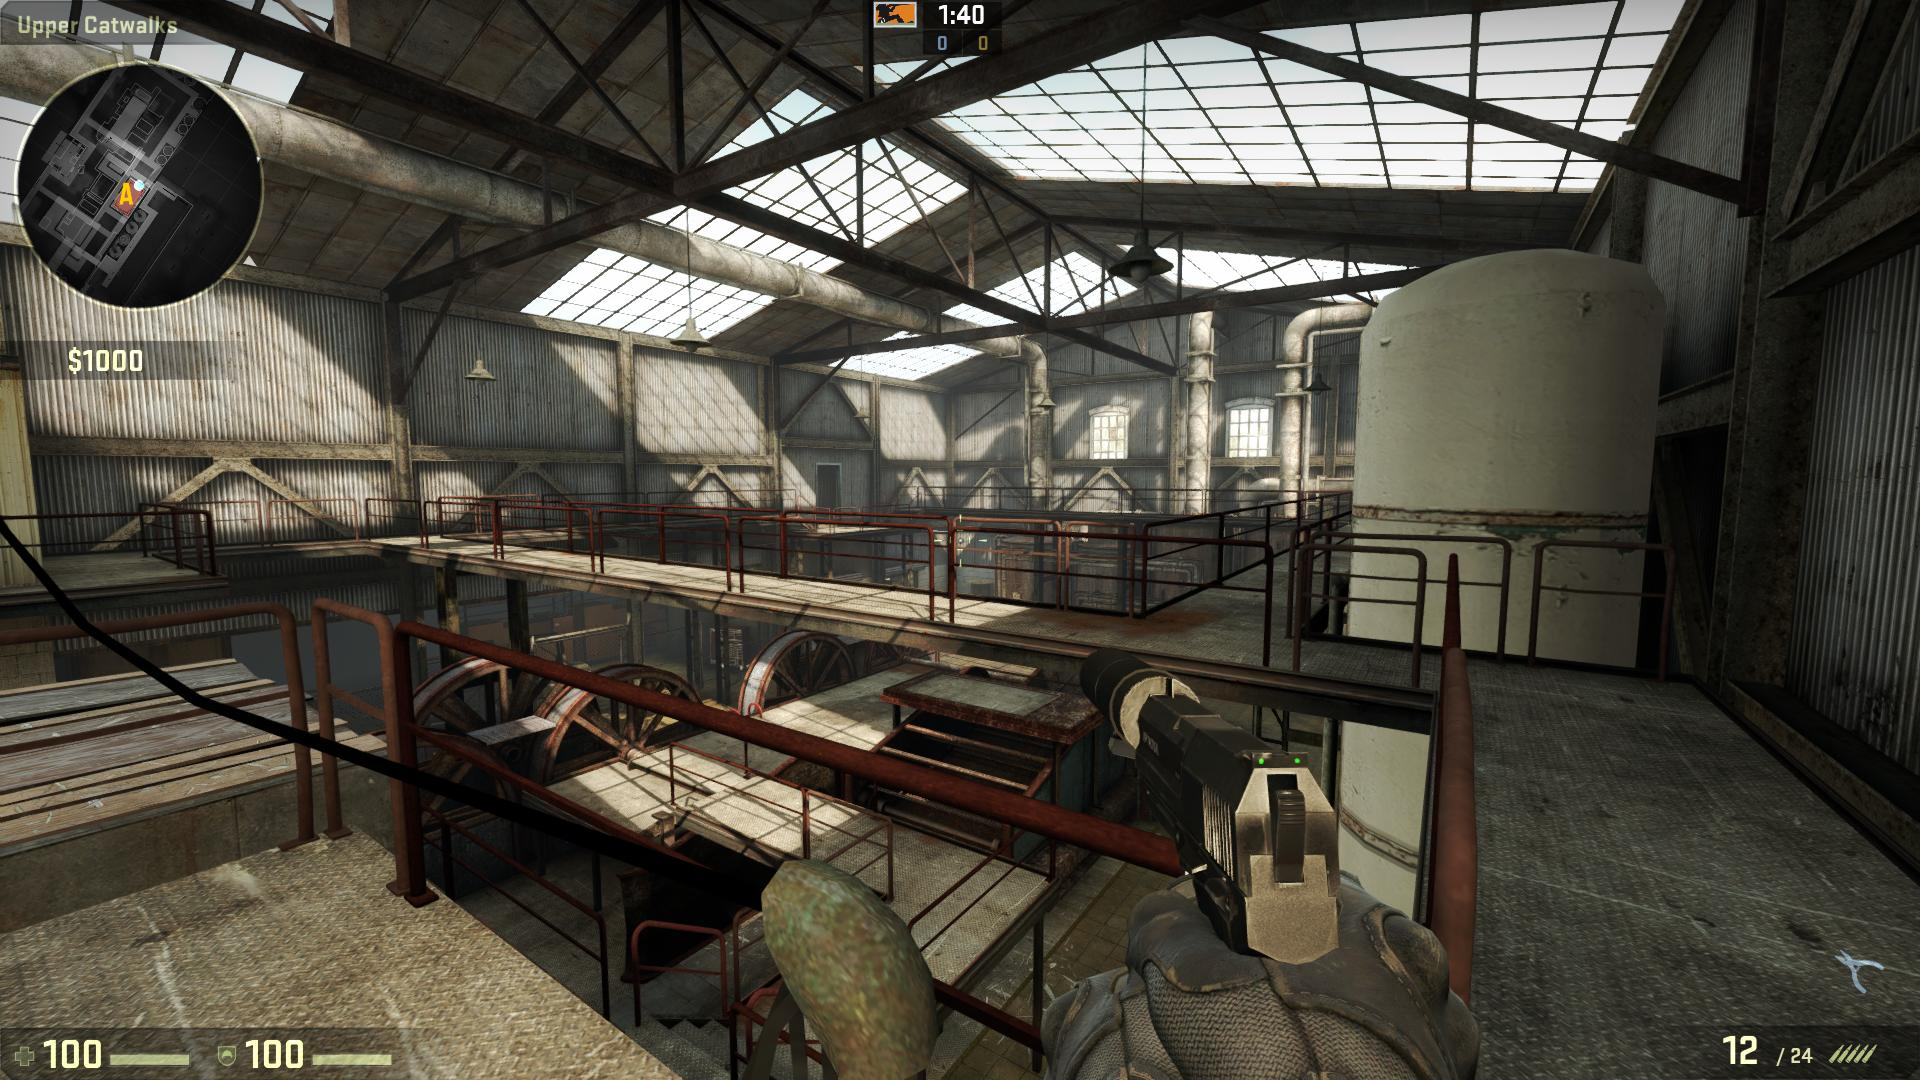 csgo de_sugarcane csgo screenshot - Gamingcfg com